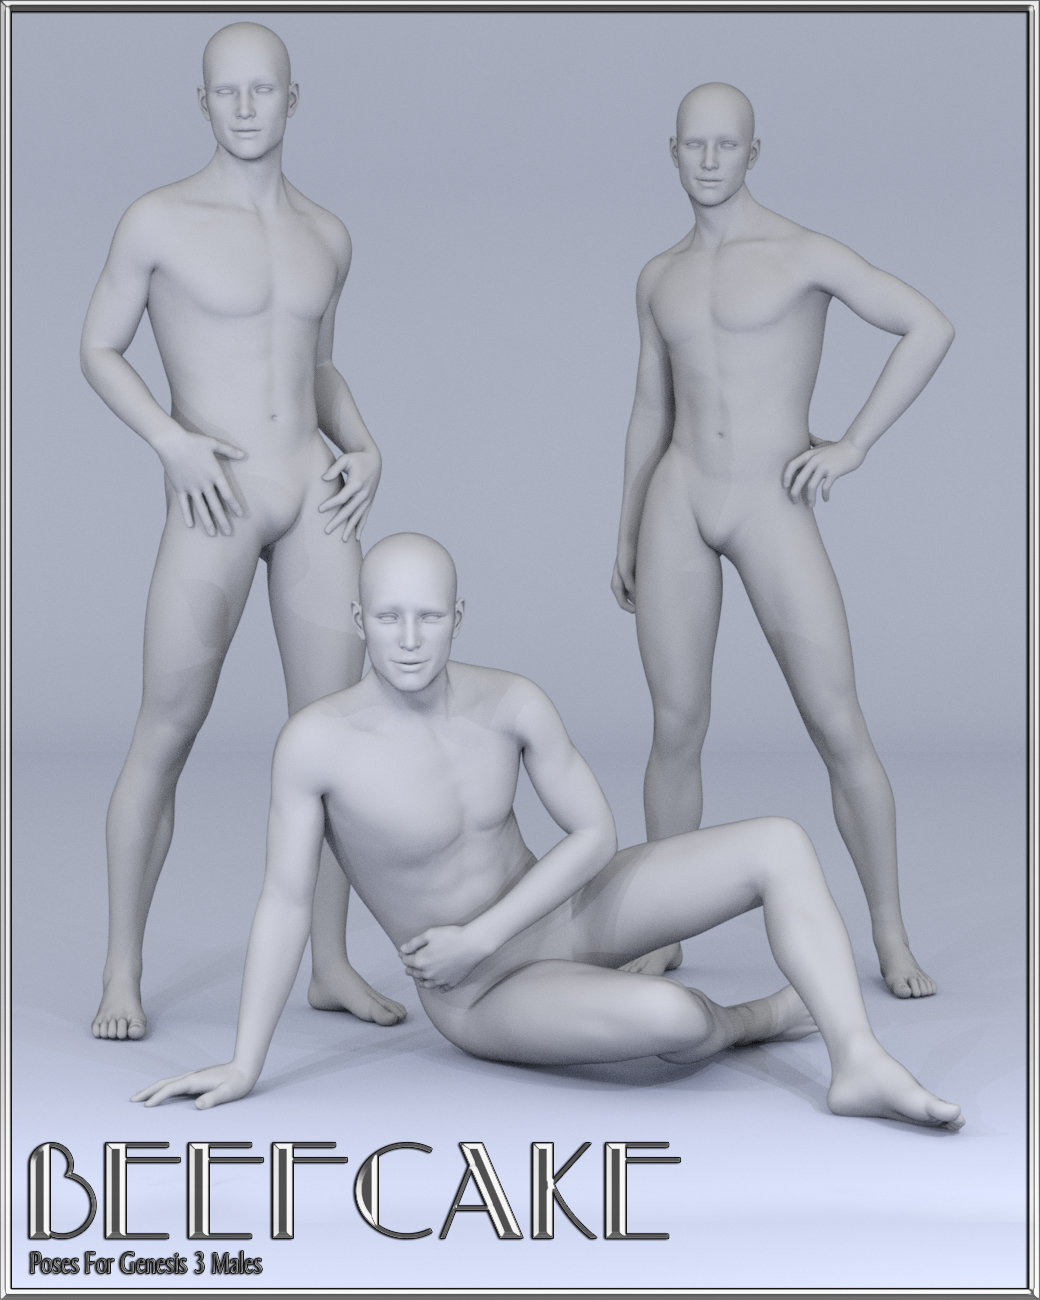 Beefcake Poses for Genesis 3 Male by: lunchlady, 3D Models by Daz 3D